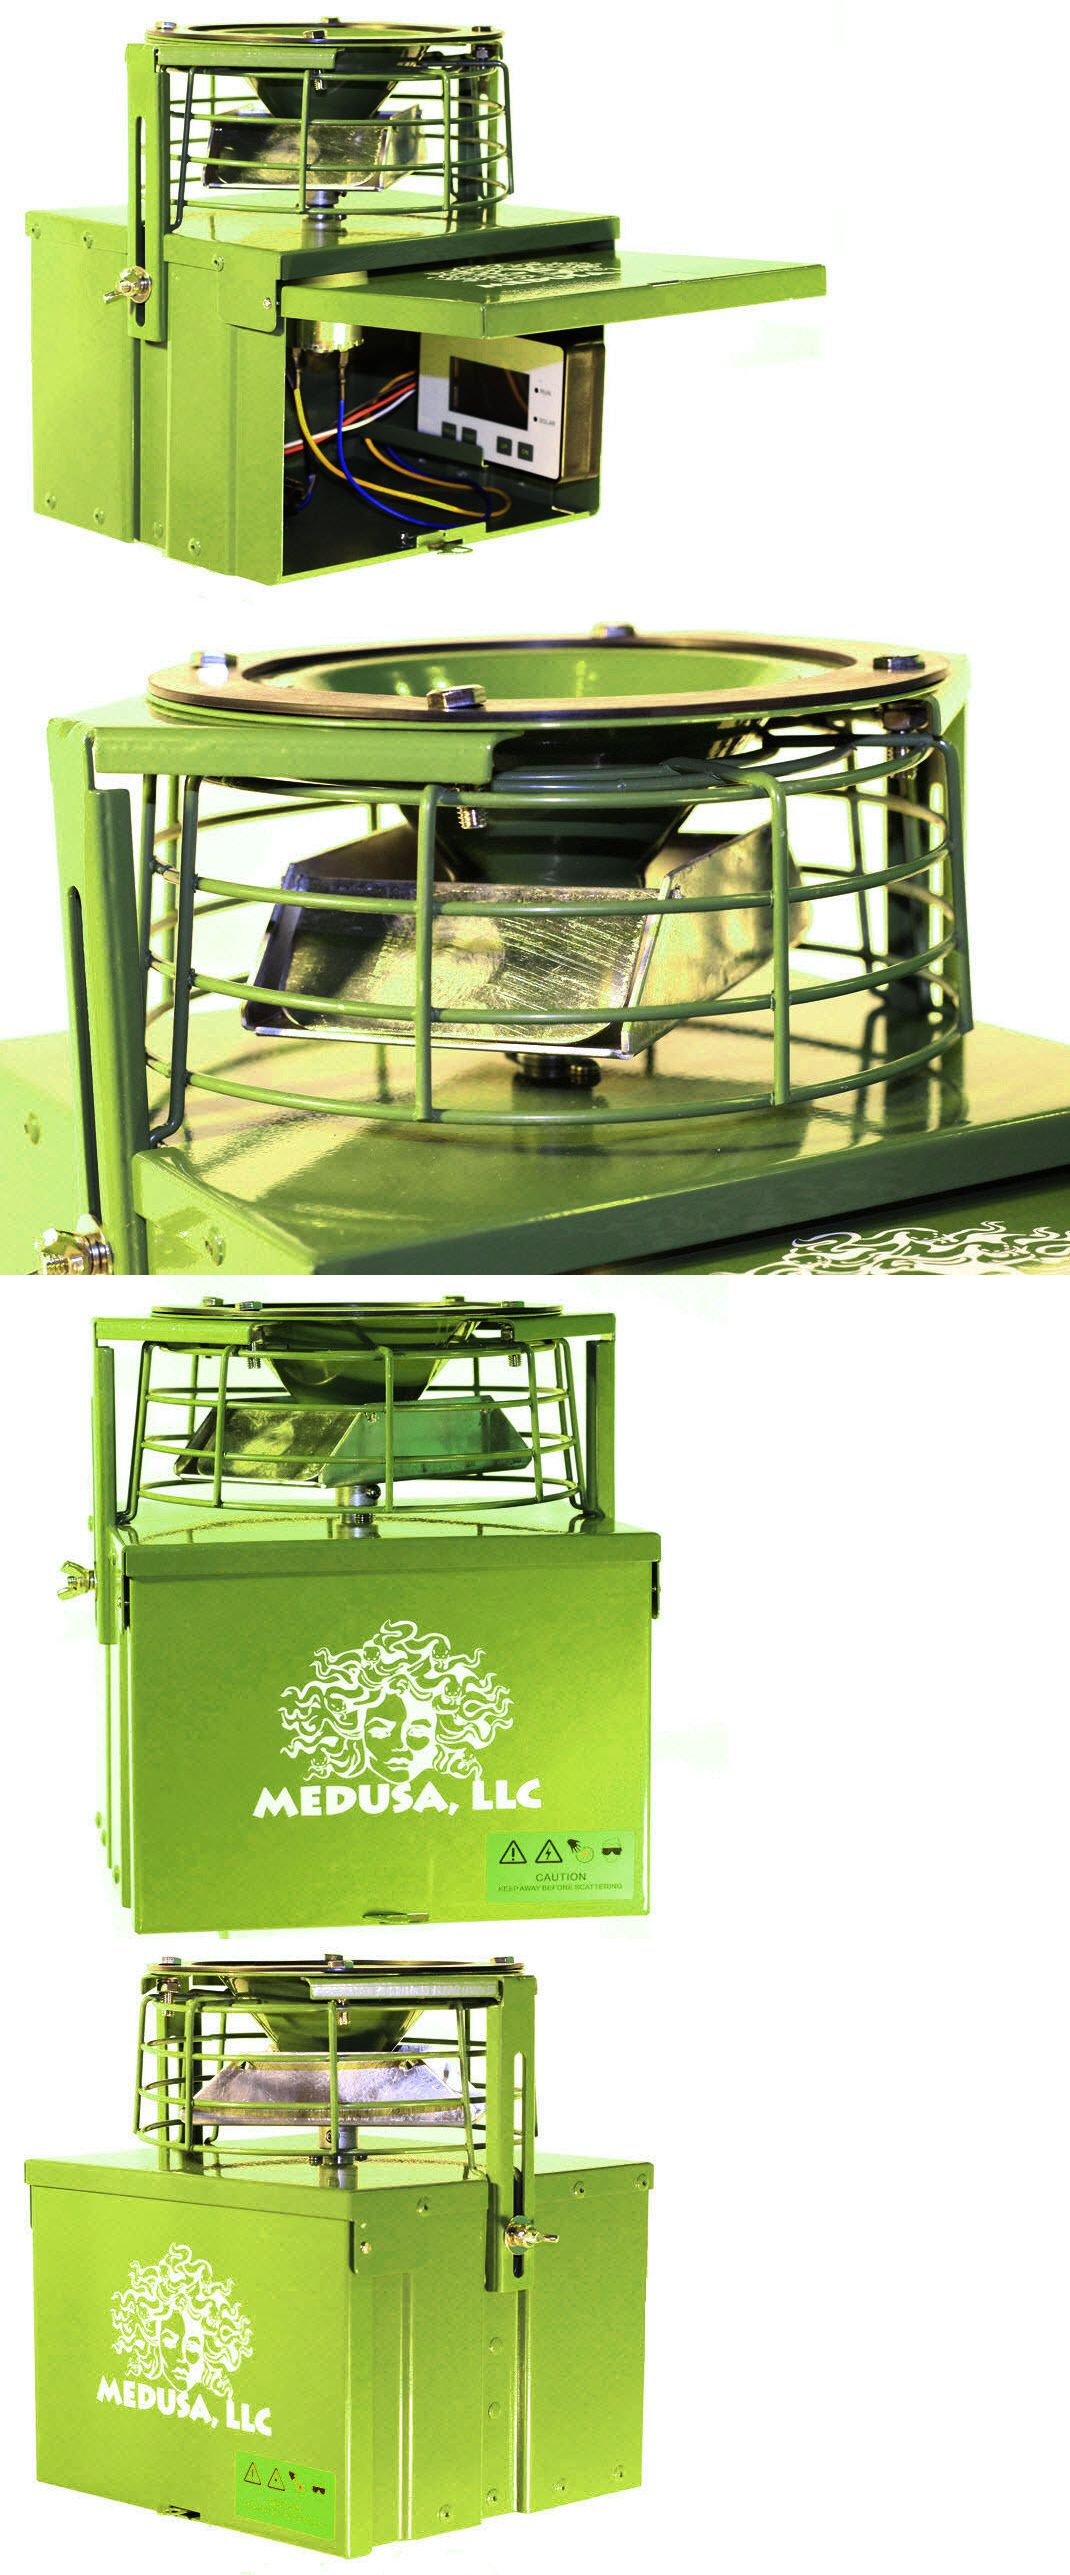 texas timer unit feeder pictures spin catalog control wildlife cast product mk deer feeders of